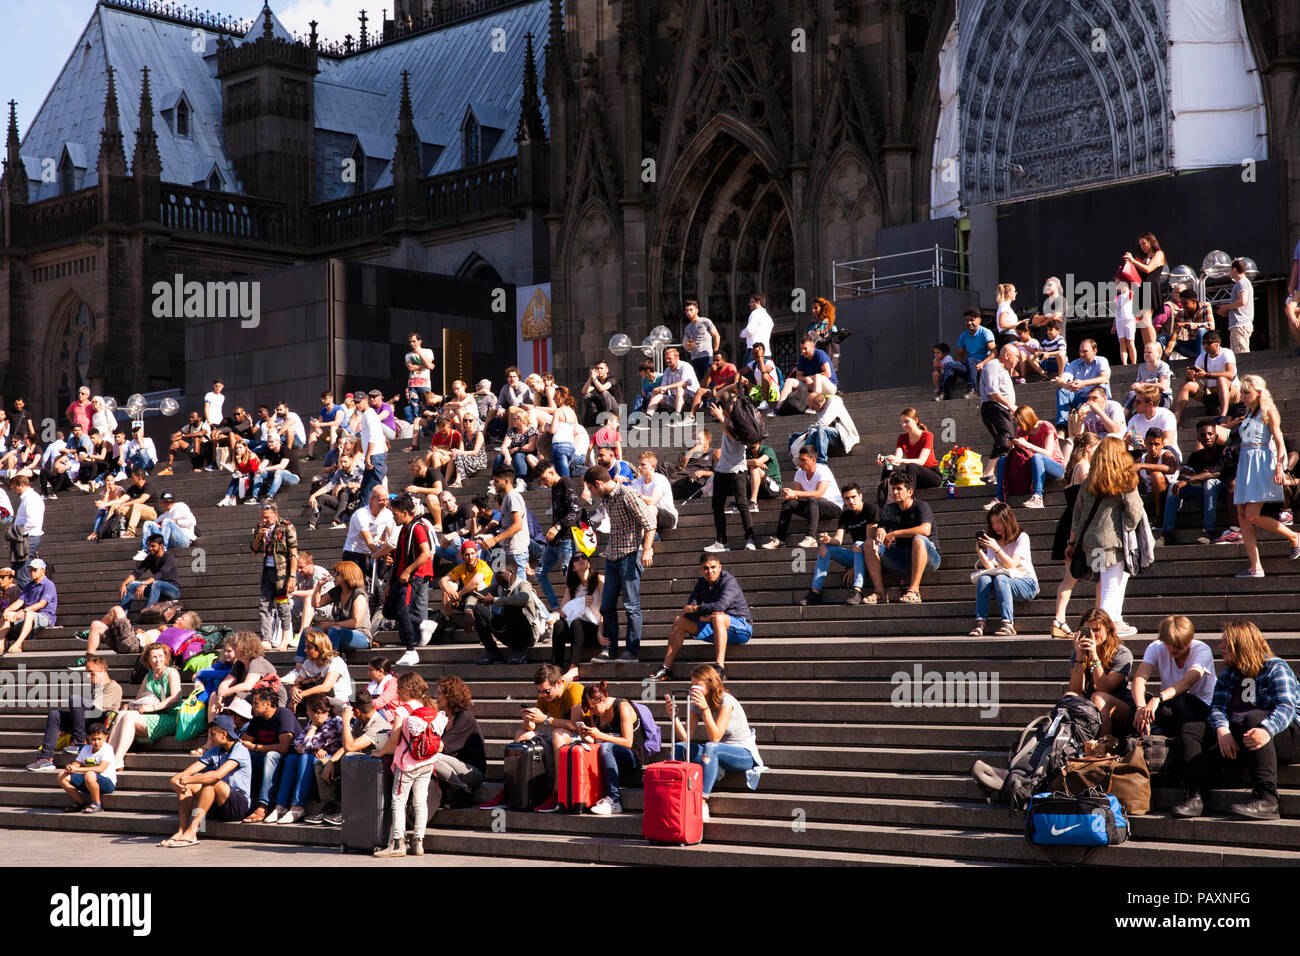 people sitting on the stairs form the cathedral square to the main station, Cologne, Germany.  Menschen sitzen auf der Treppe von der Domplatte zum Ha - Stock Image